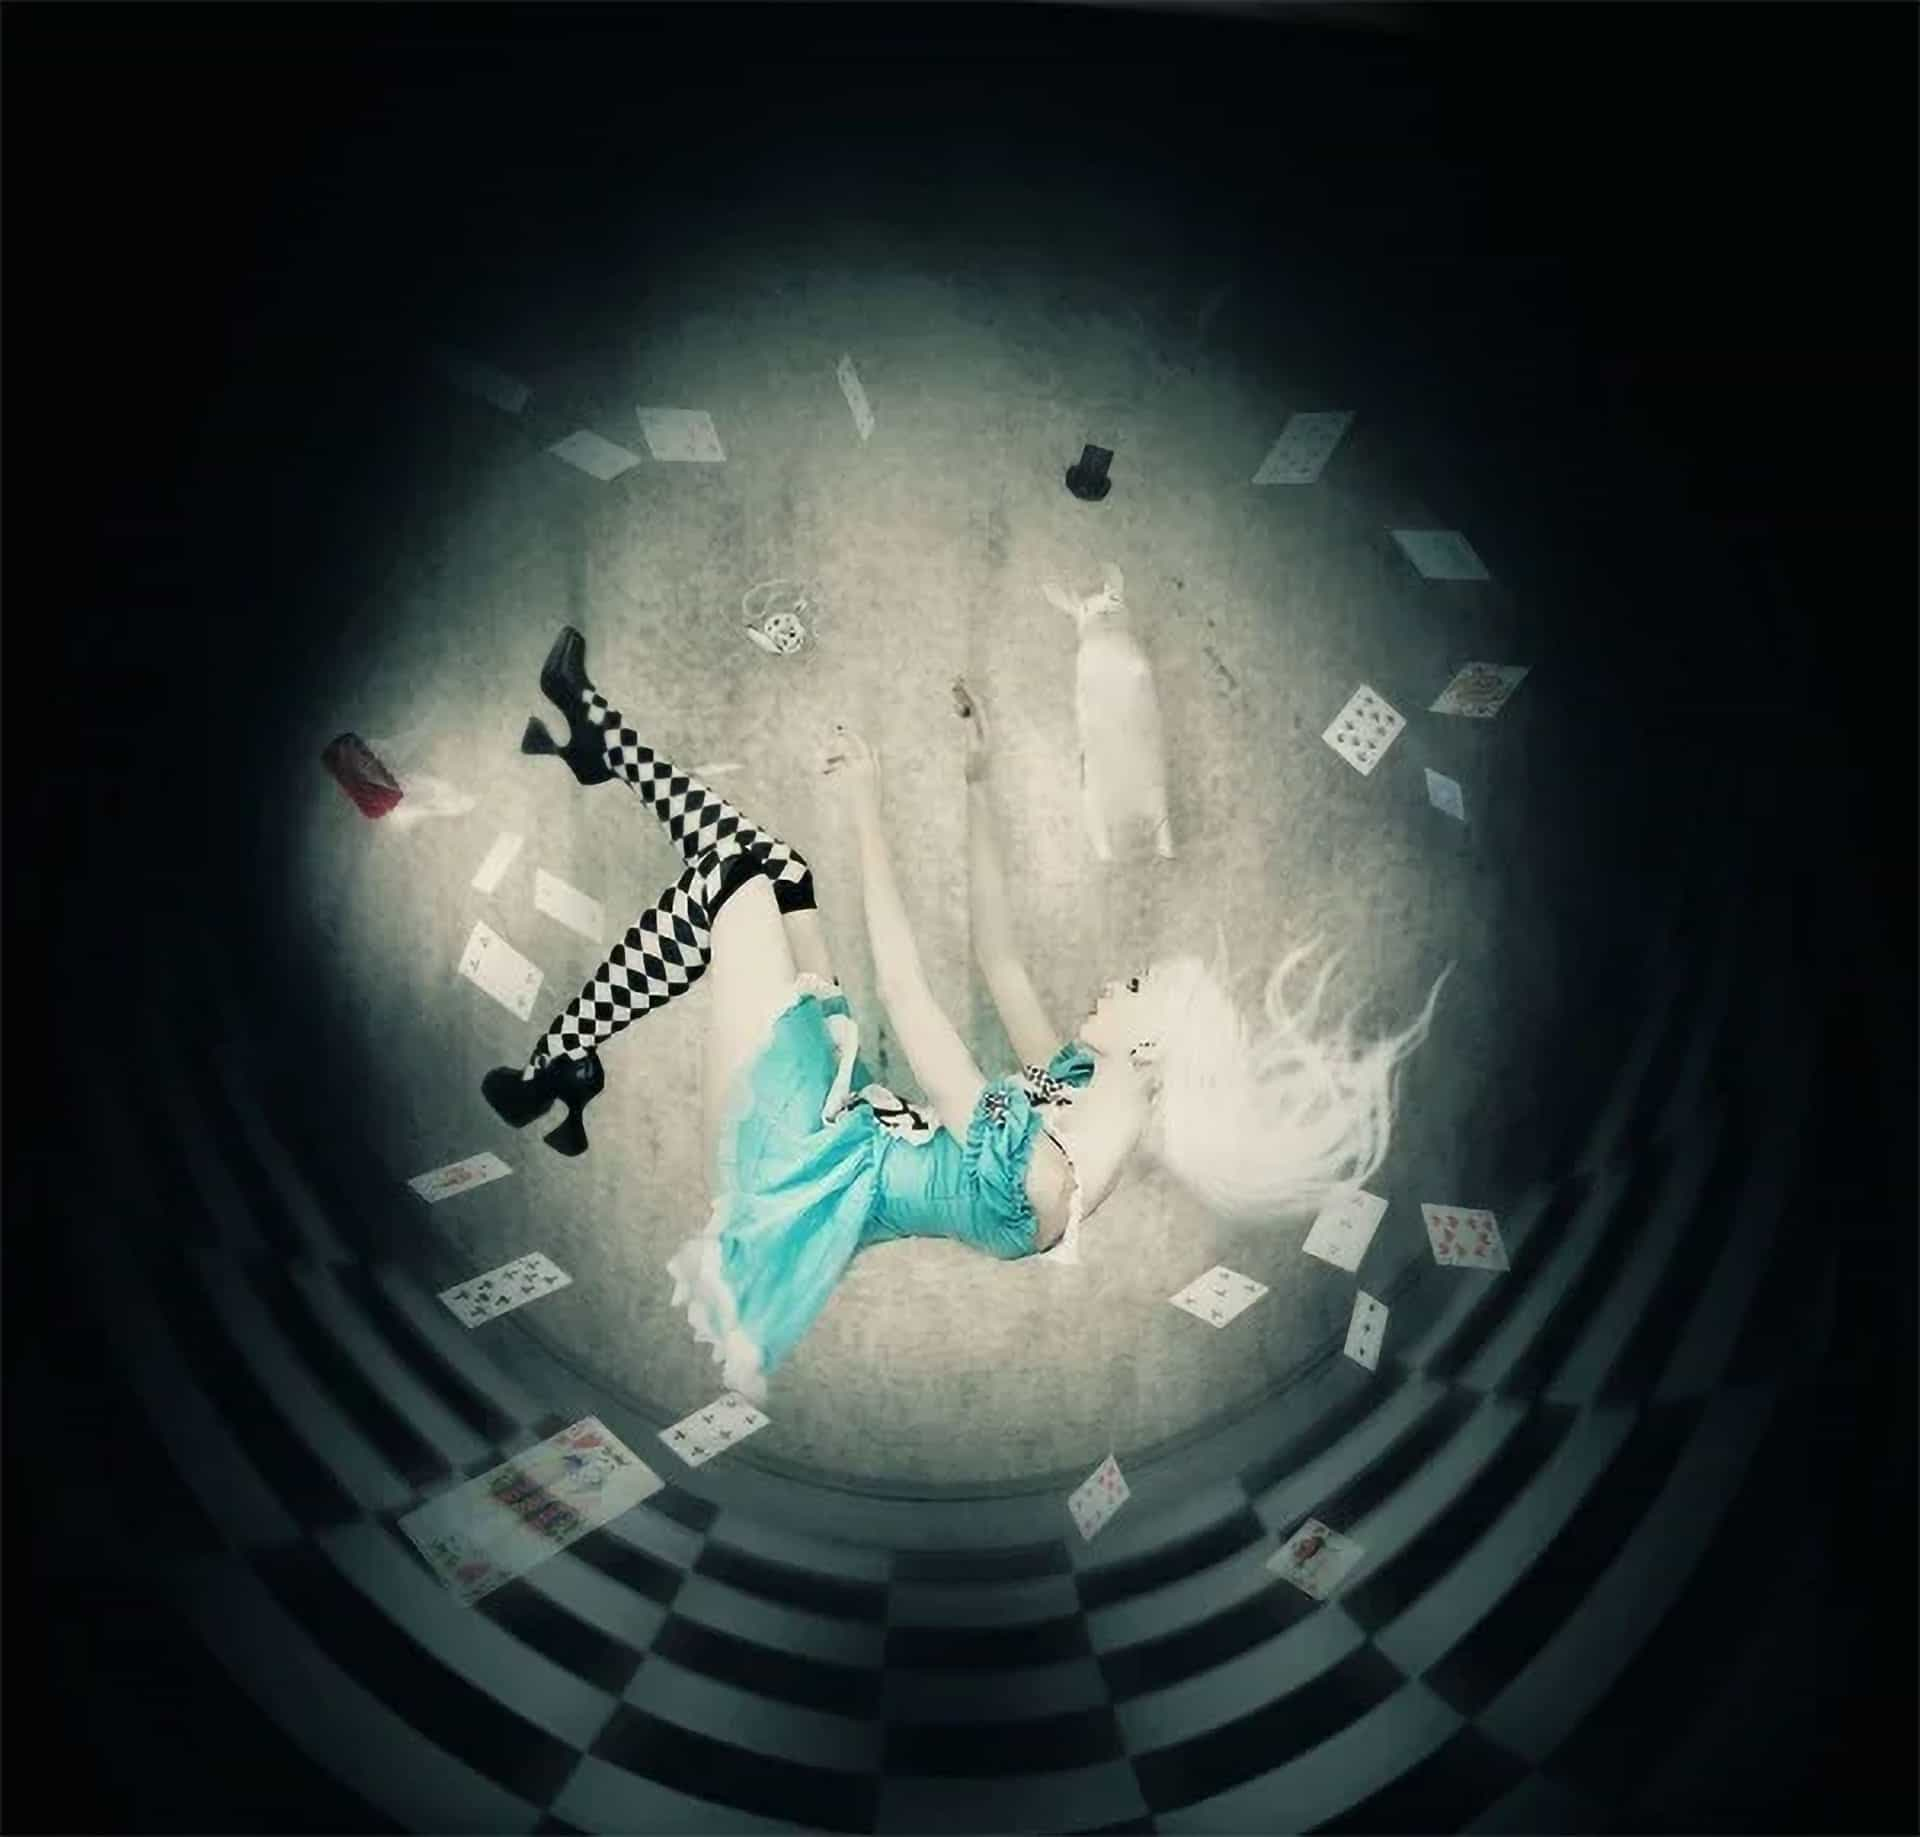 """How to Create an """"Alice in Wonderland"""" Inspired Artwork with Photoshop"""